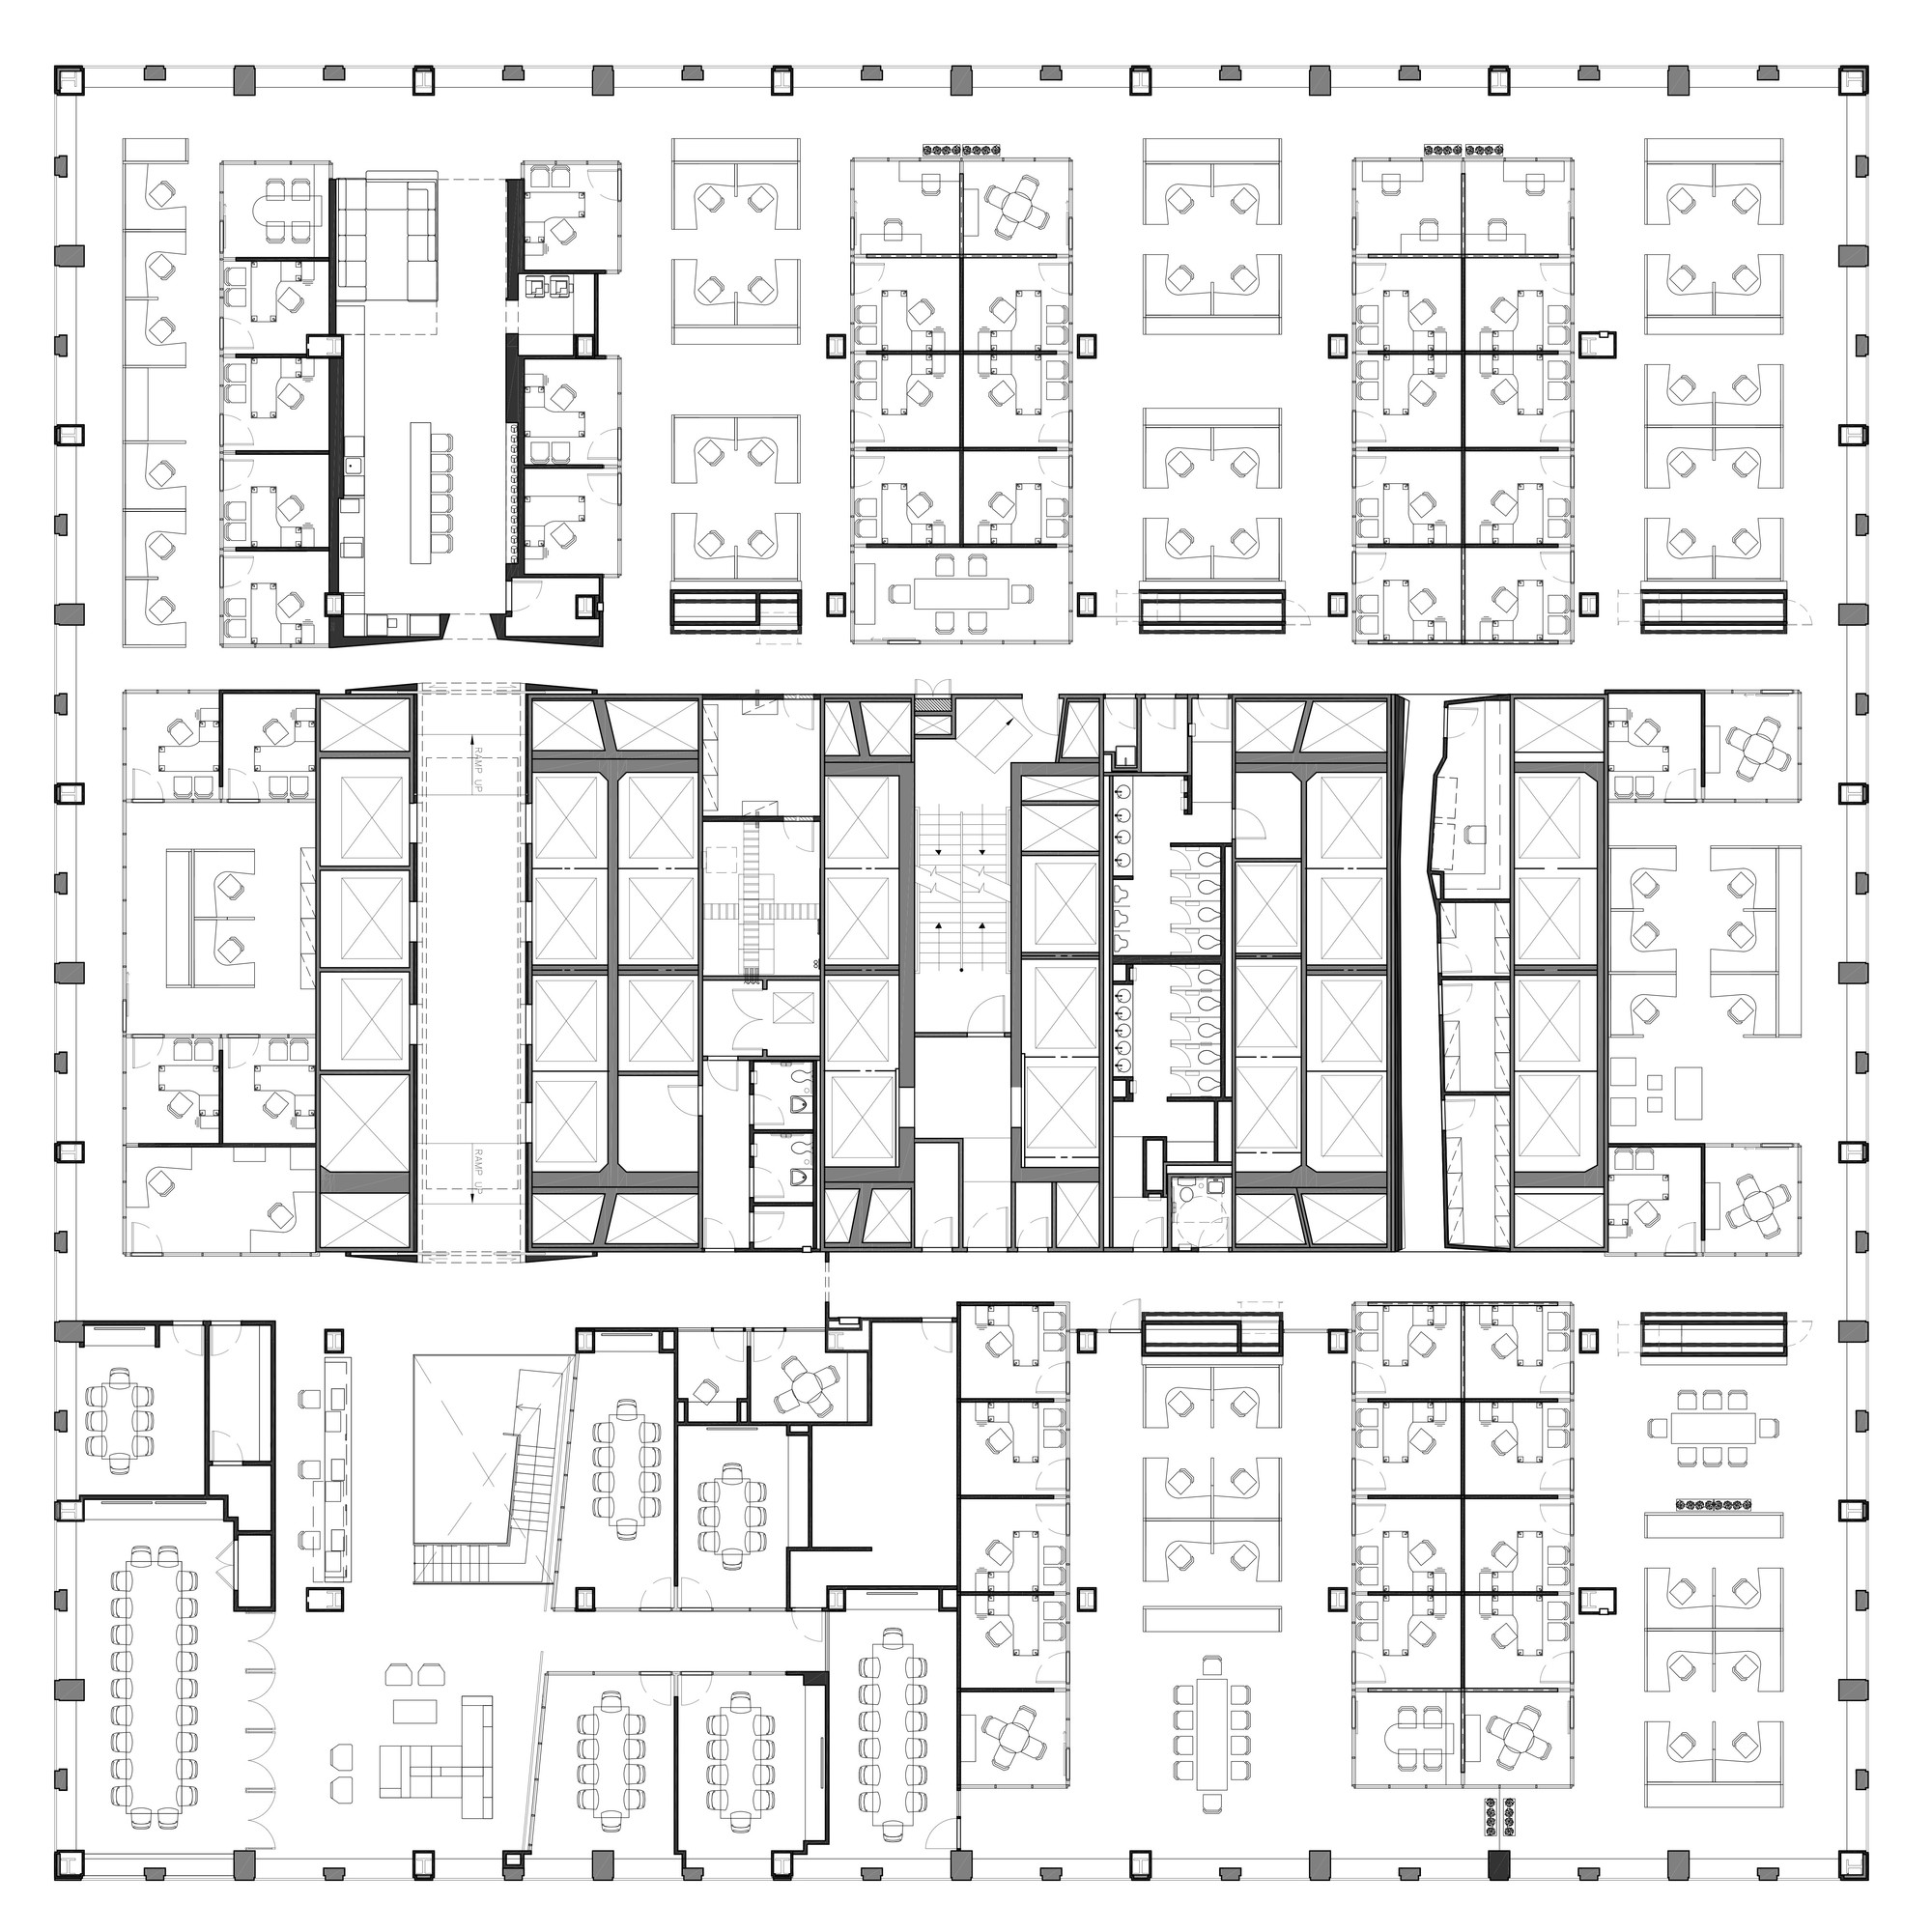 Beautiful Company Floor Plan Part - 9: Midtown Financial Company / A + I Architecture. 14 / 14. Ninth Floor Plan